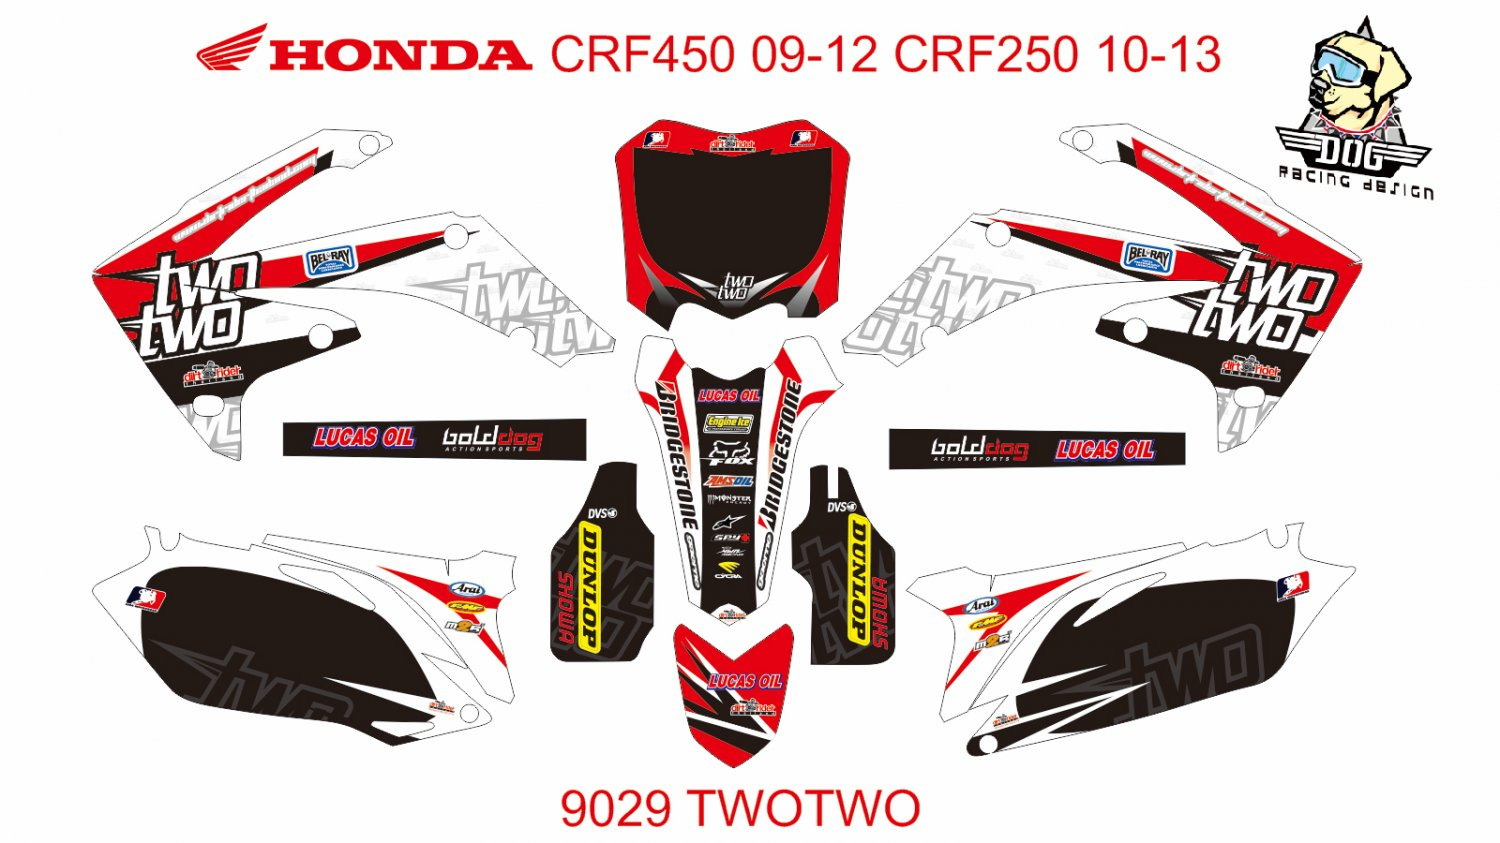 HONDA CRF 450 2009-2012 CRF 250 2010-2013 DECAL KIT CODE.9029